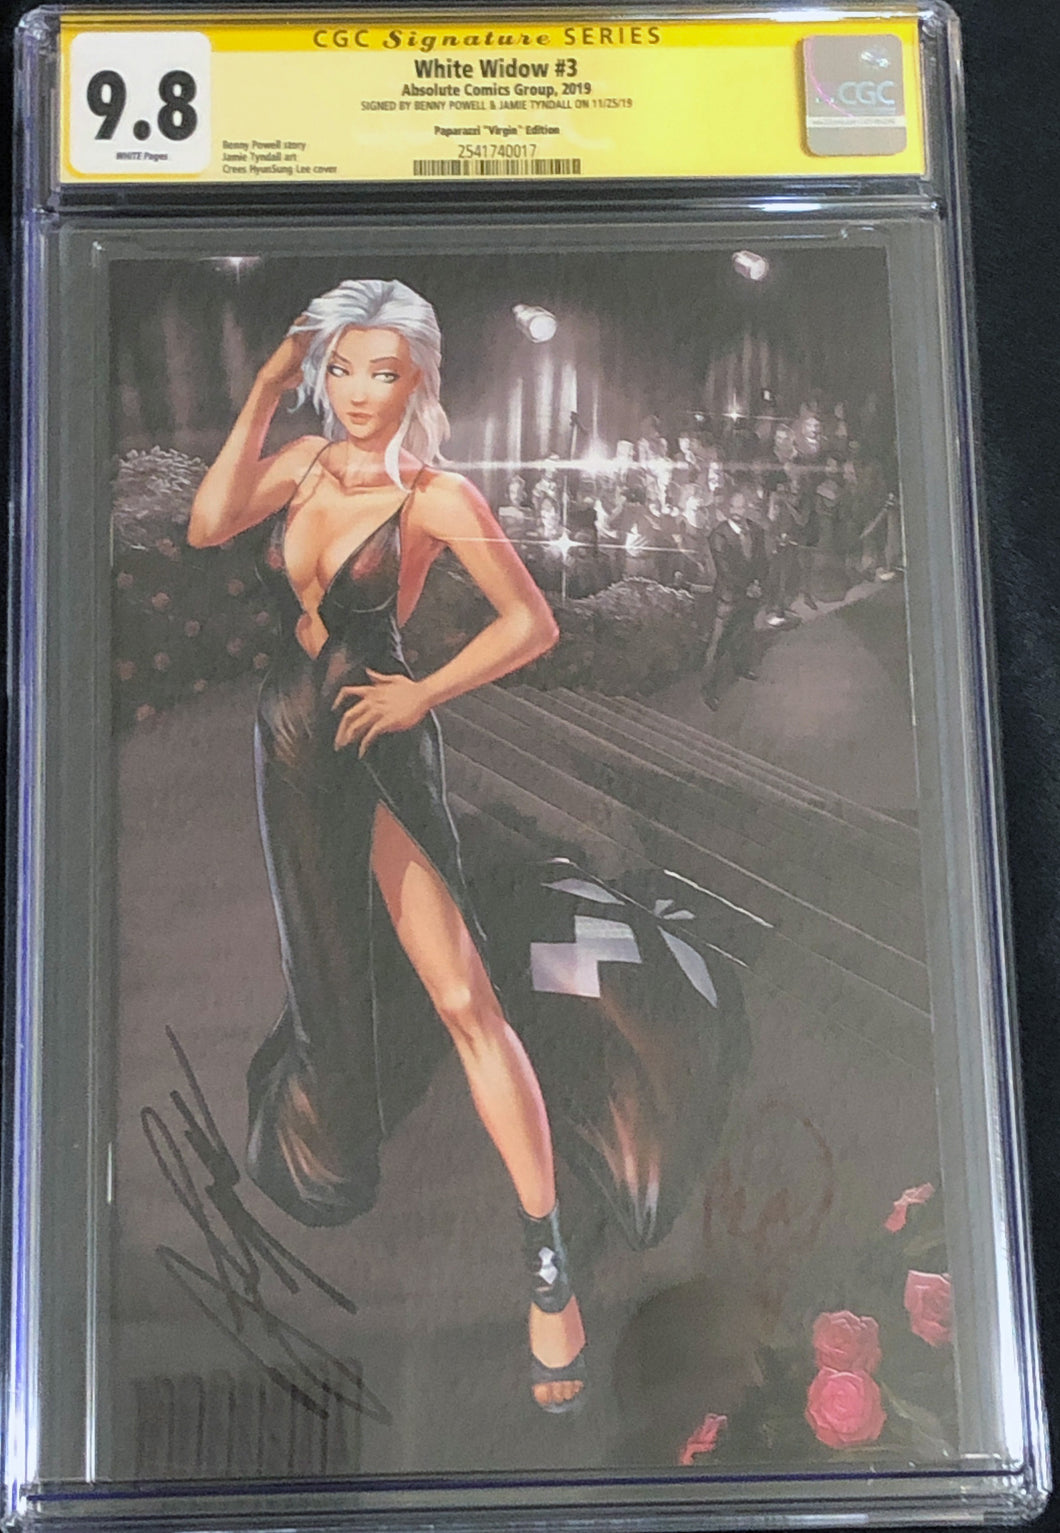 White Widow #3L 9.8 CGC Yellow Label - Paparazzi Virgin - Signed